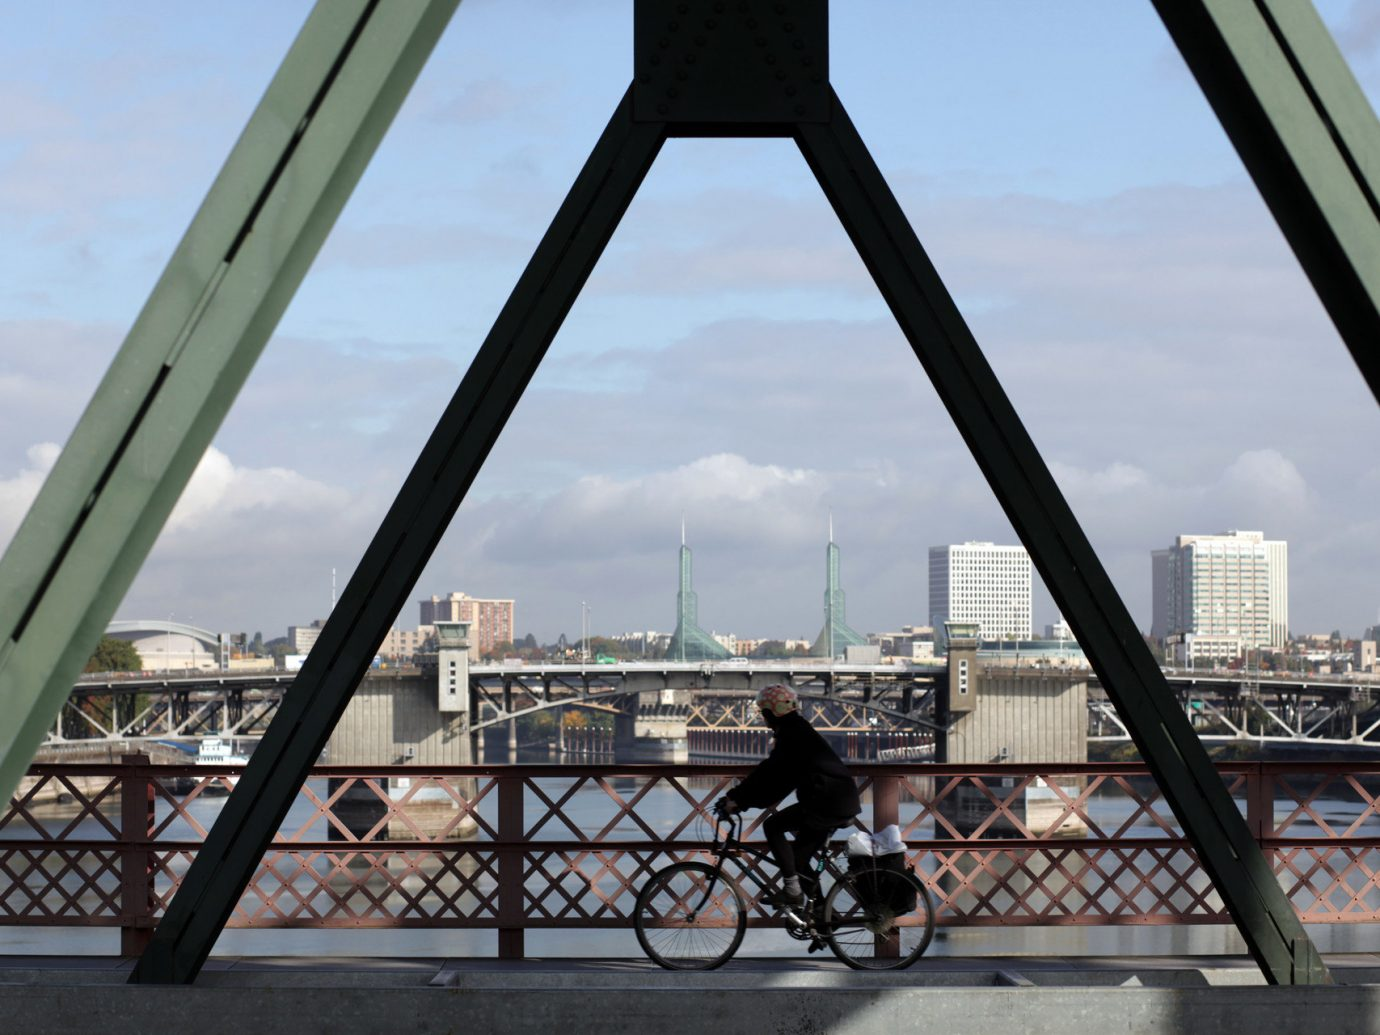 Bike bikers Biking bridge City city streets city views Outdoor Activities Outdoors people streets Trip Ideas urban view sky outdoor water building transport landmark Architecture River overlooking arch railing